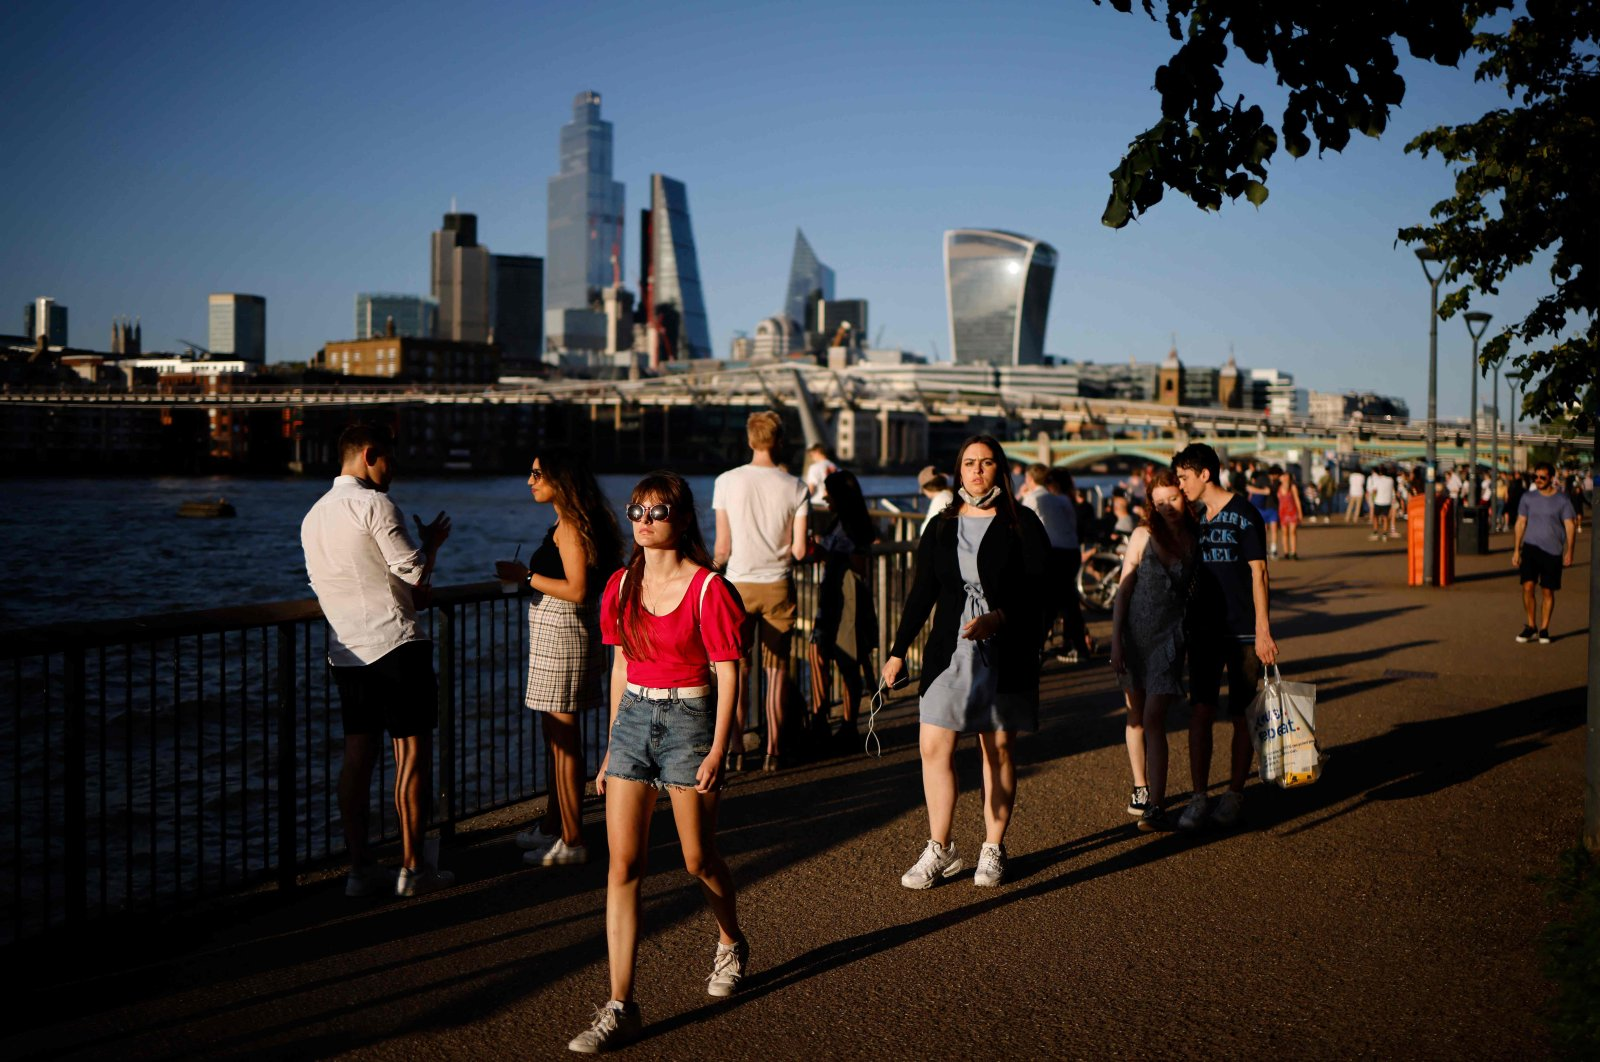 People enjoy the evening sunshine on Thames Embankment by the river Thames with the skyline of the City of London in the background, London, U.K., July 16, 2021. (AFP Photo)